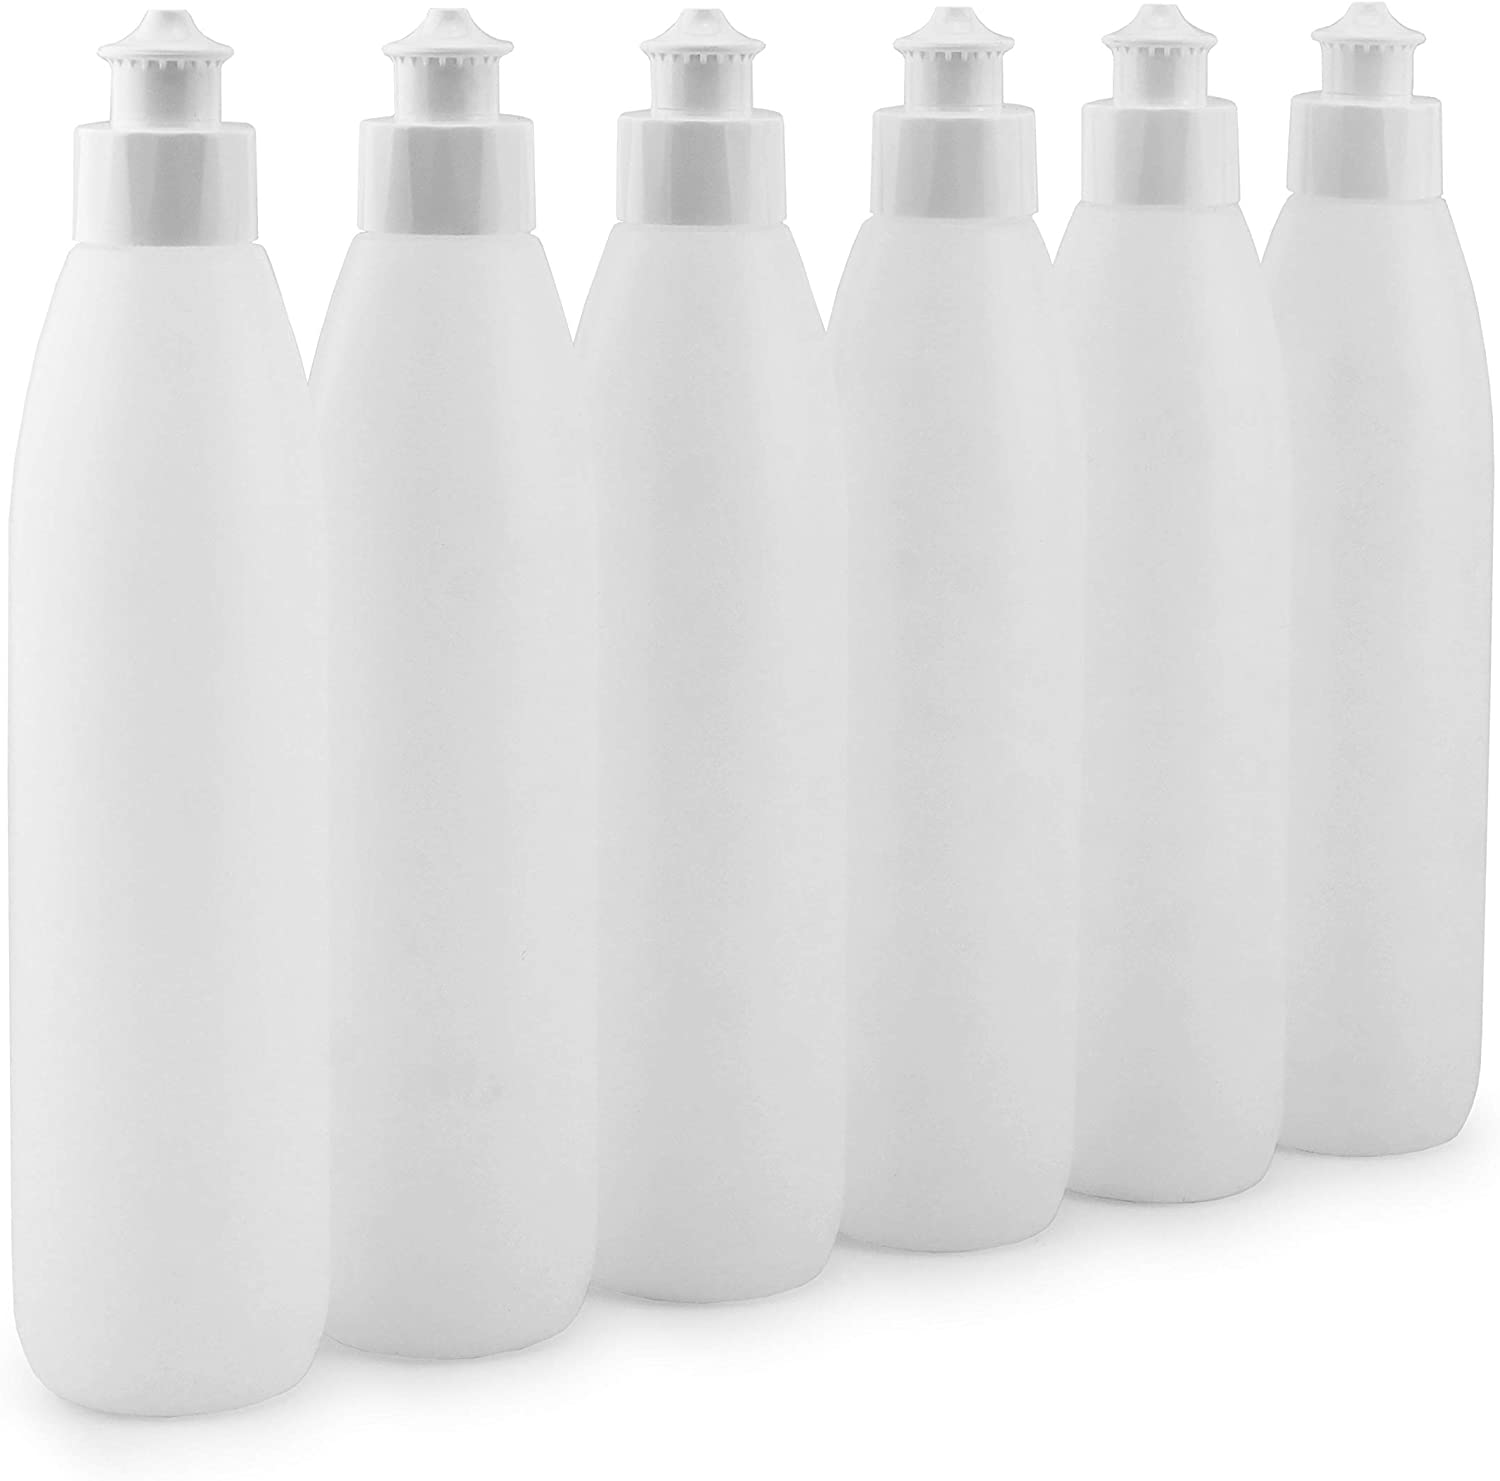 Cornucopia 8-Ounce Squeeze Bottles for Dish Soap and Sauces (6-Pack); Push Pull Cap Dispenser HDPE Squirt Bottles Ideal Soap Dispensers, Condiment Squirt Bottles or Personal Hygiene, BPA-Free